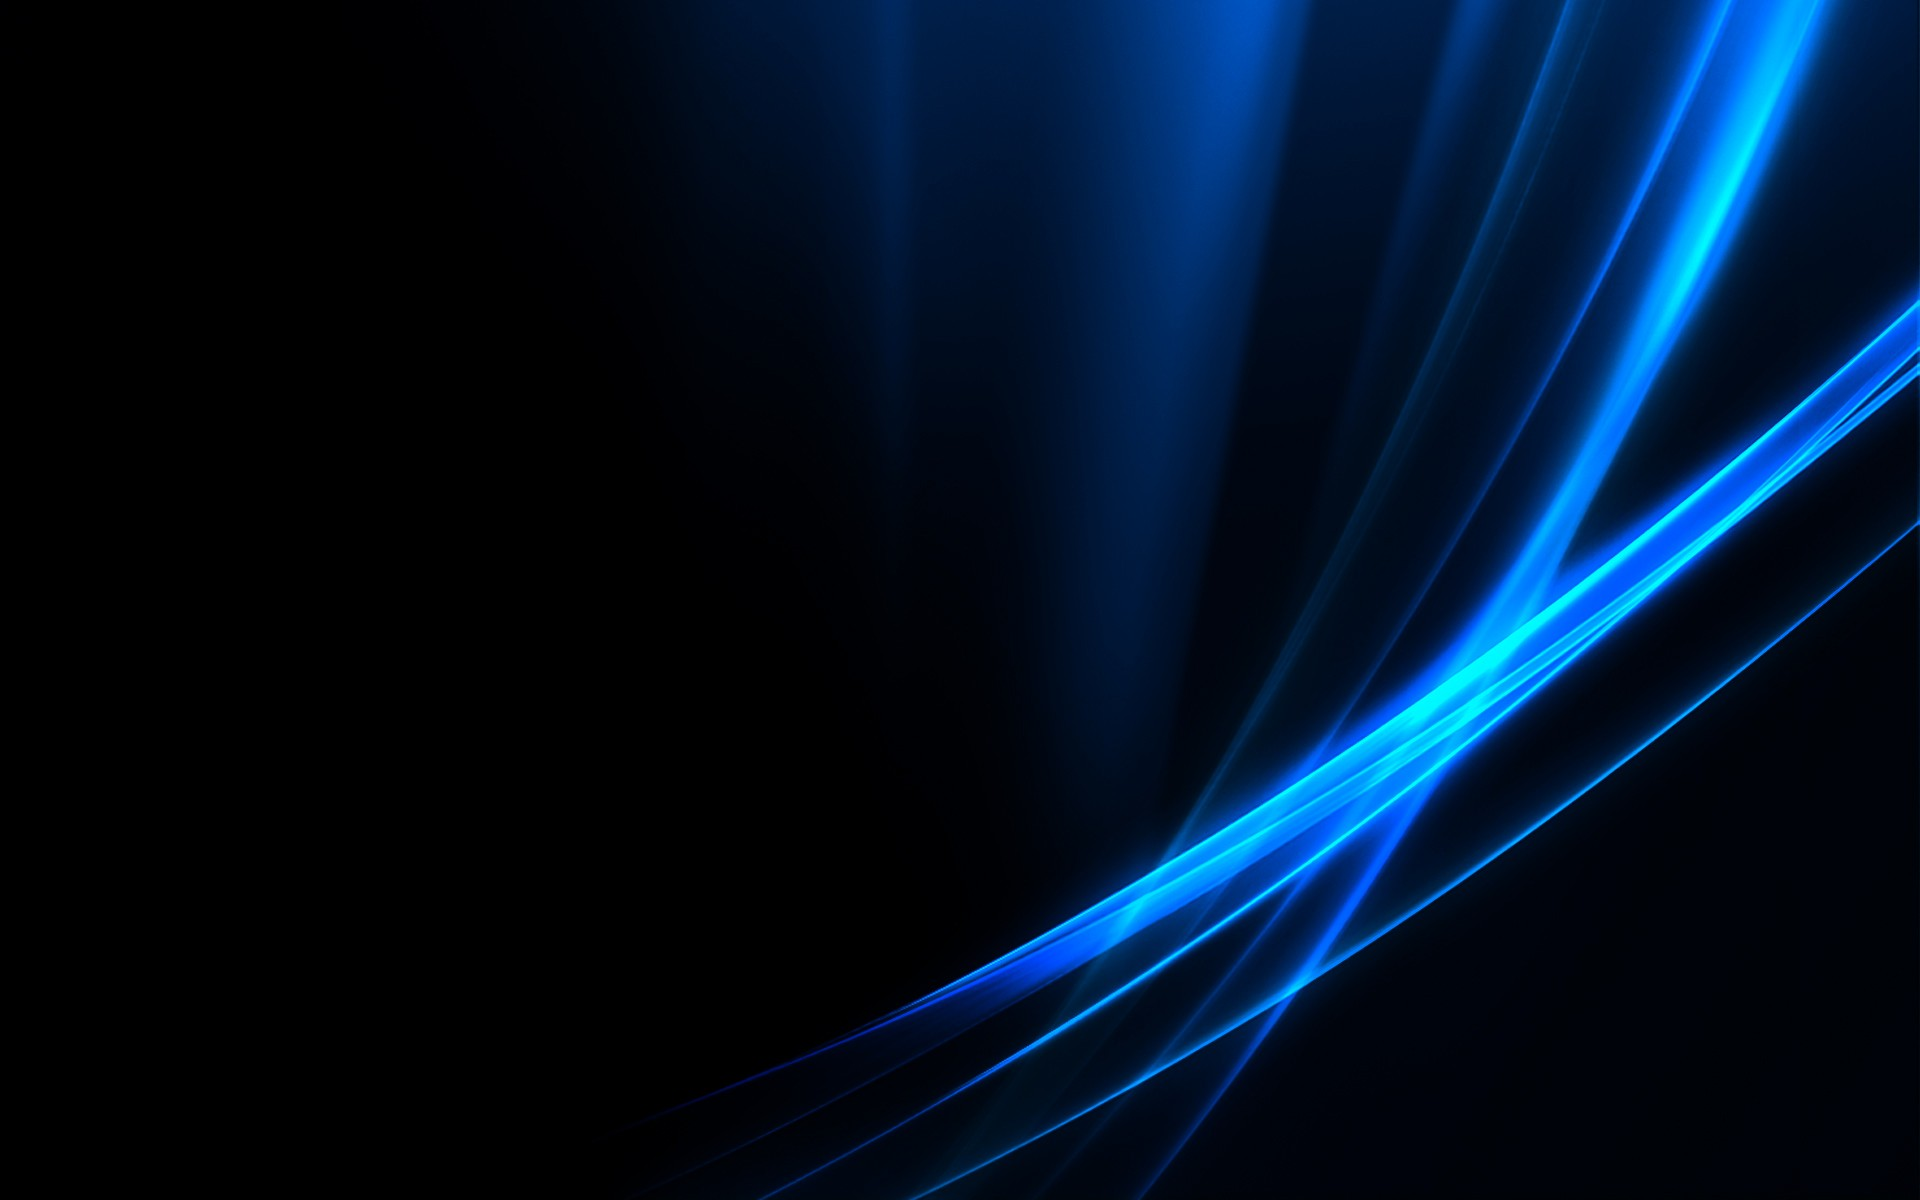 Dark Blue Background Images Wallpapertag: Blue Abstract Wallpaper ·① Download Free Awesome